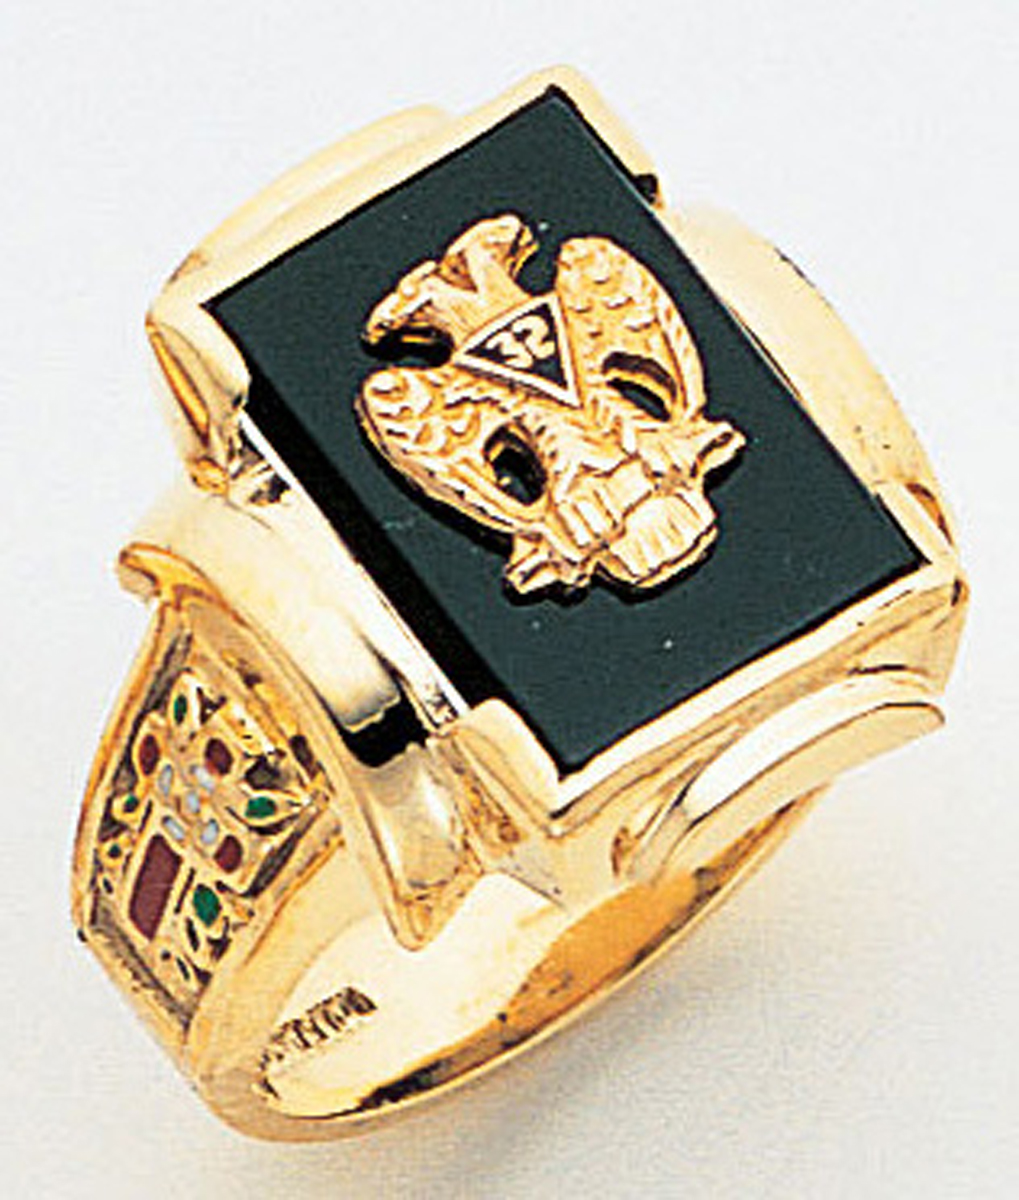 Masonic 32 Degree Scottish Rite Ring Macoy Publishing Masonic Supply 3420